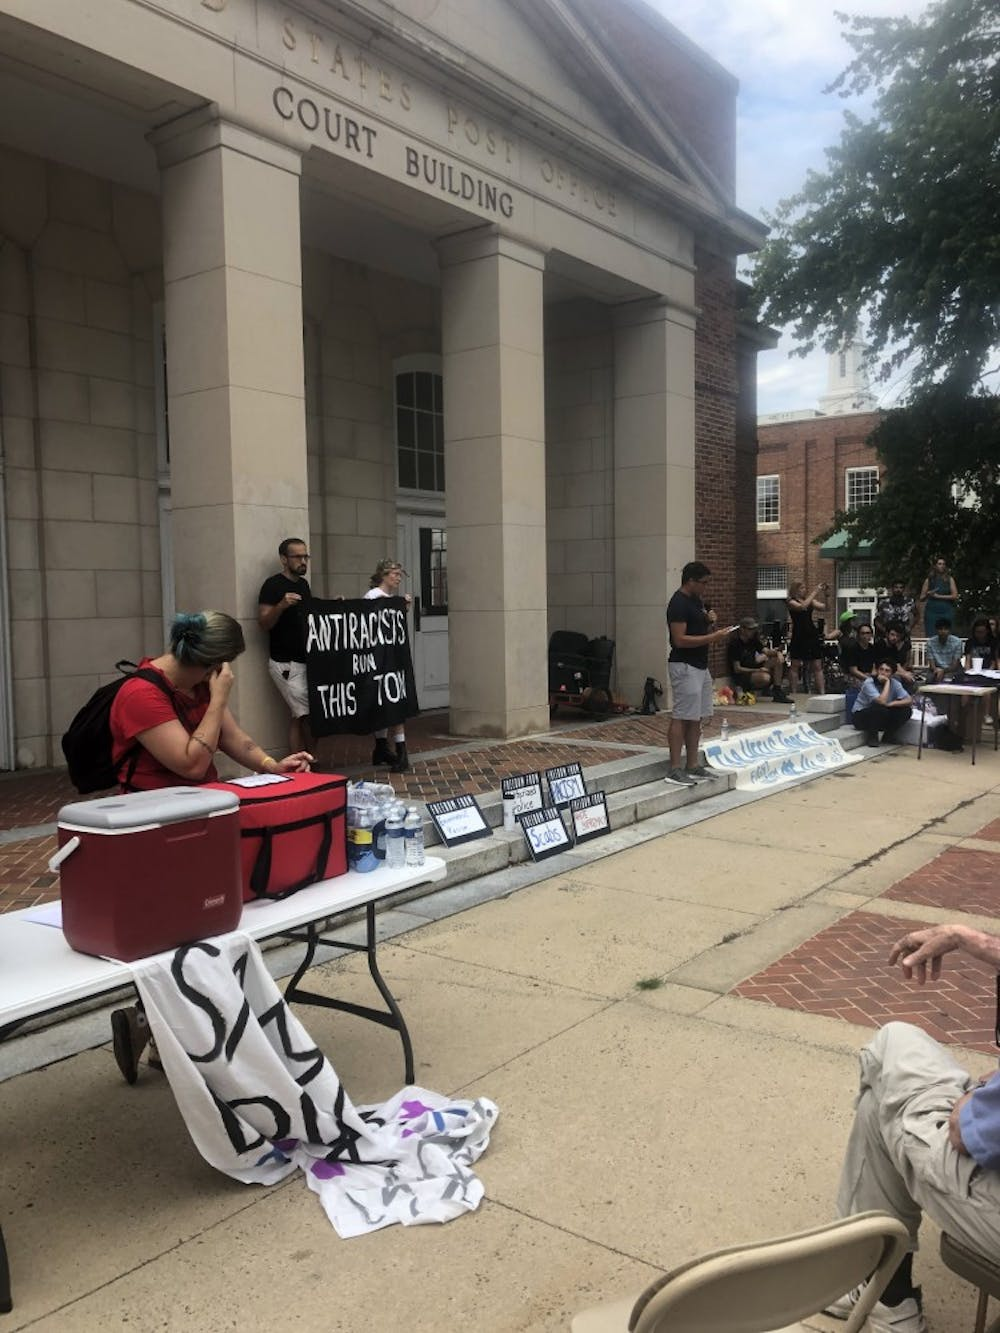 Carolina Indian Circle acknowledged that UNC was built on Native American land